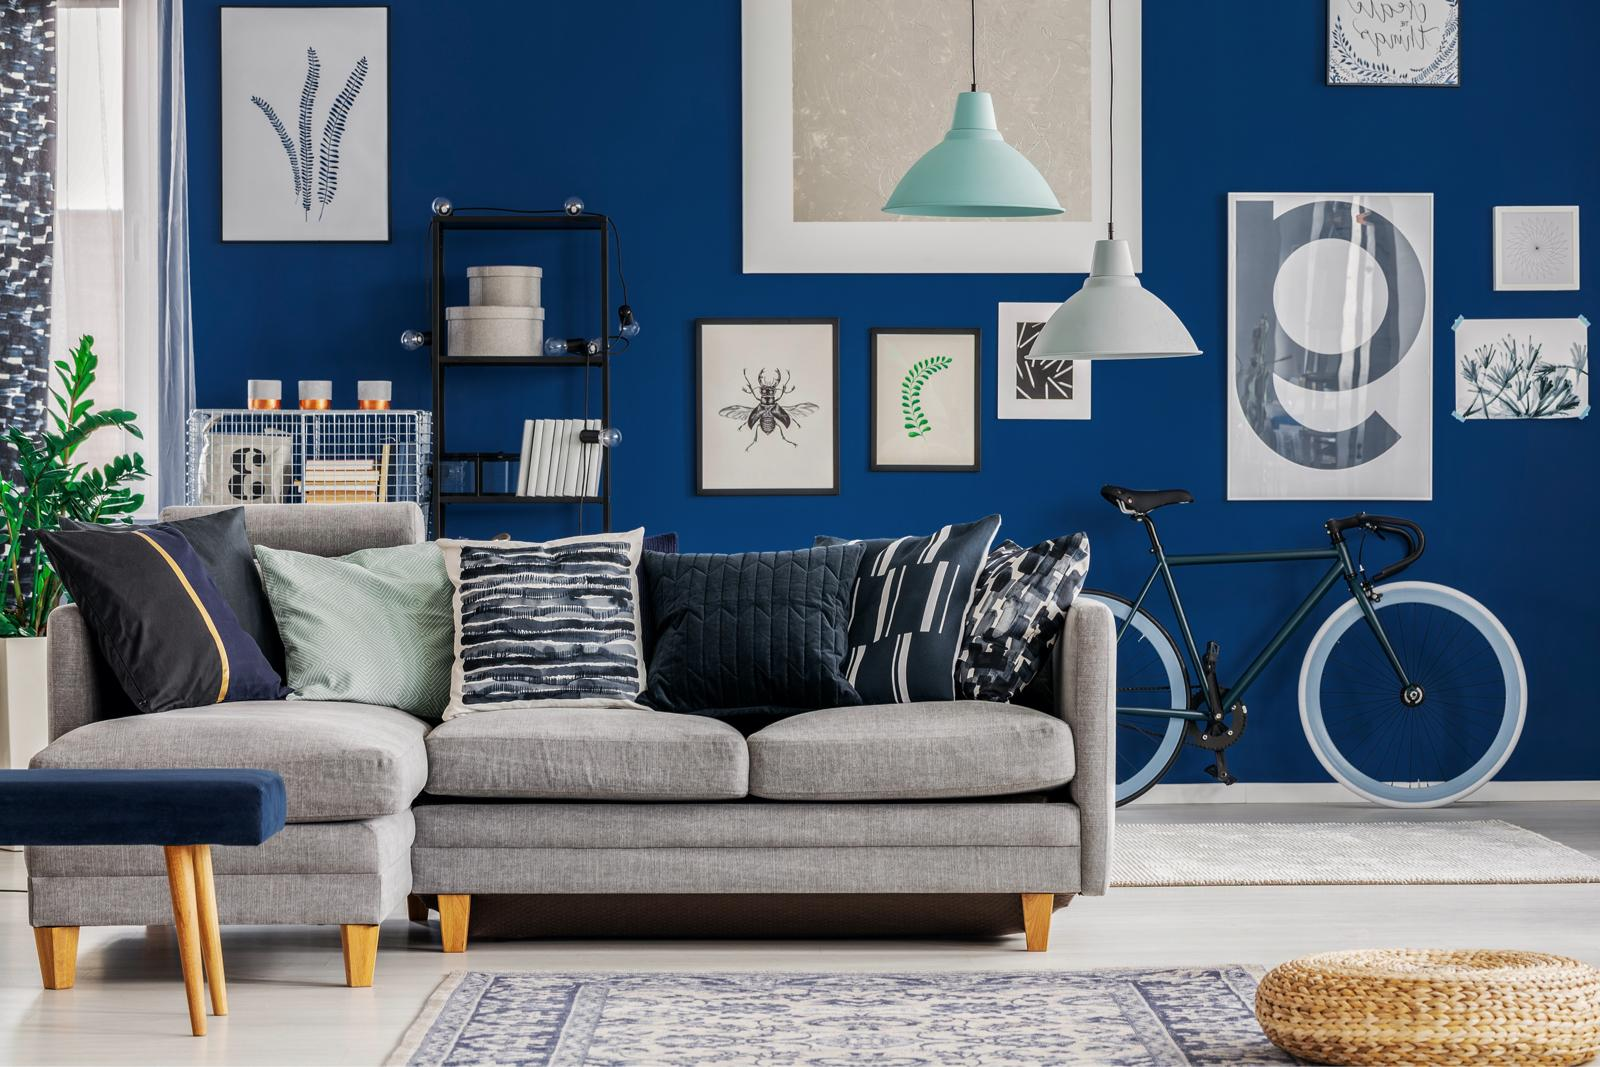 Maximalism Style And Why We Love It 6, Paneling Factory Of Virginia